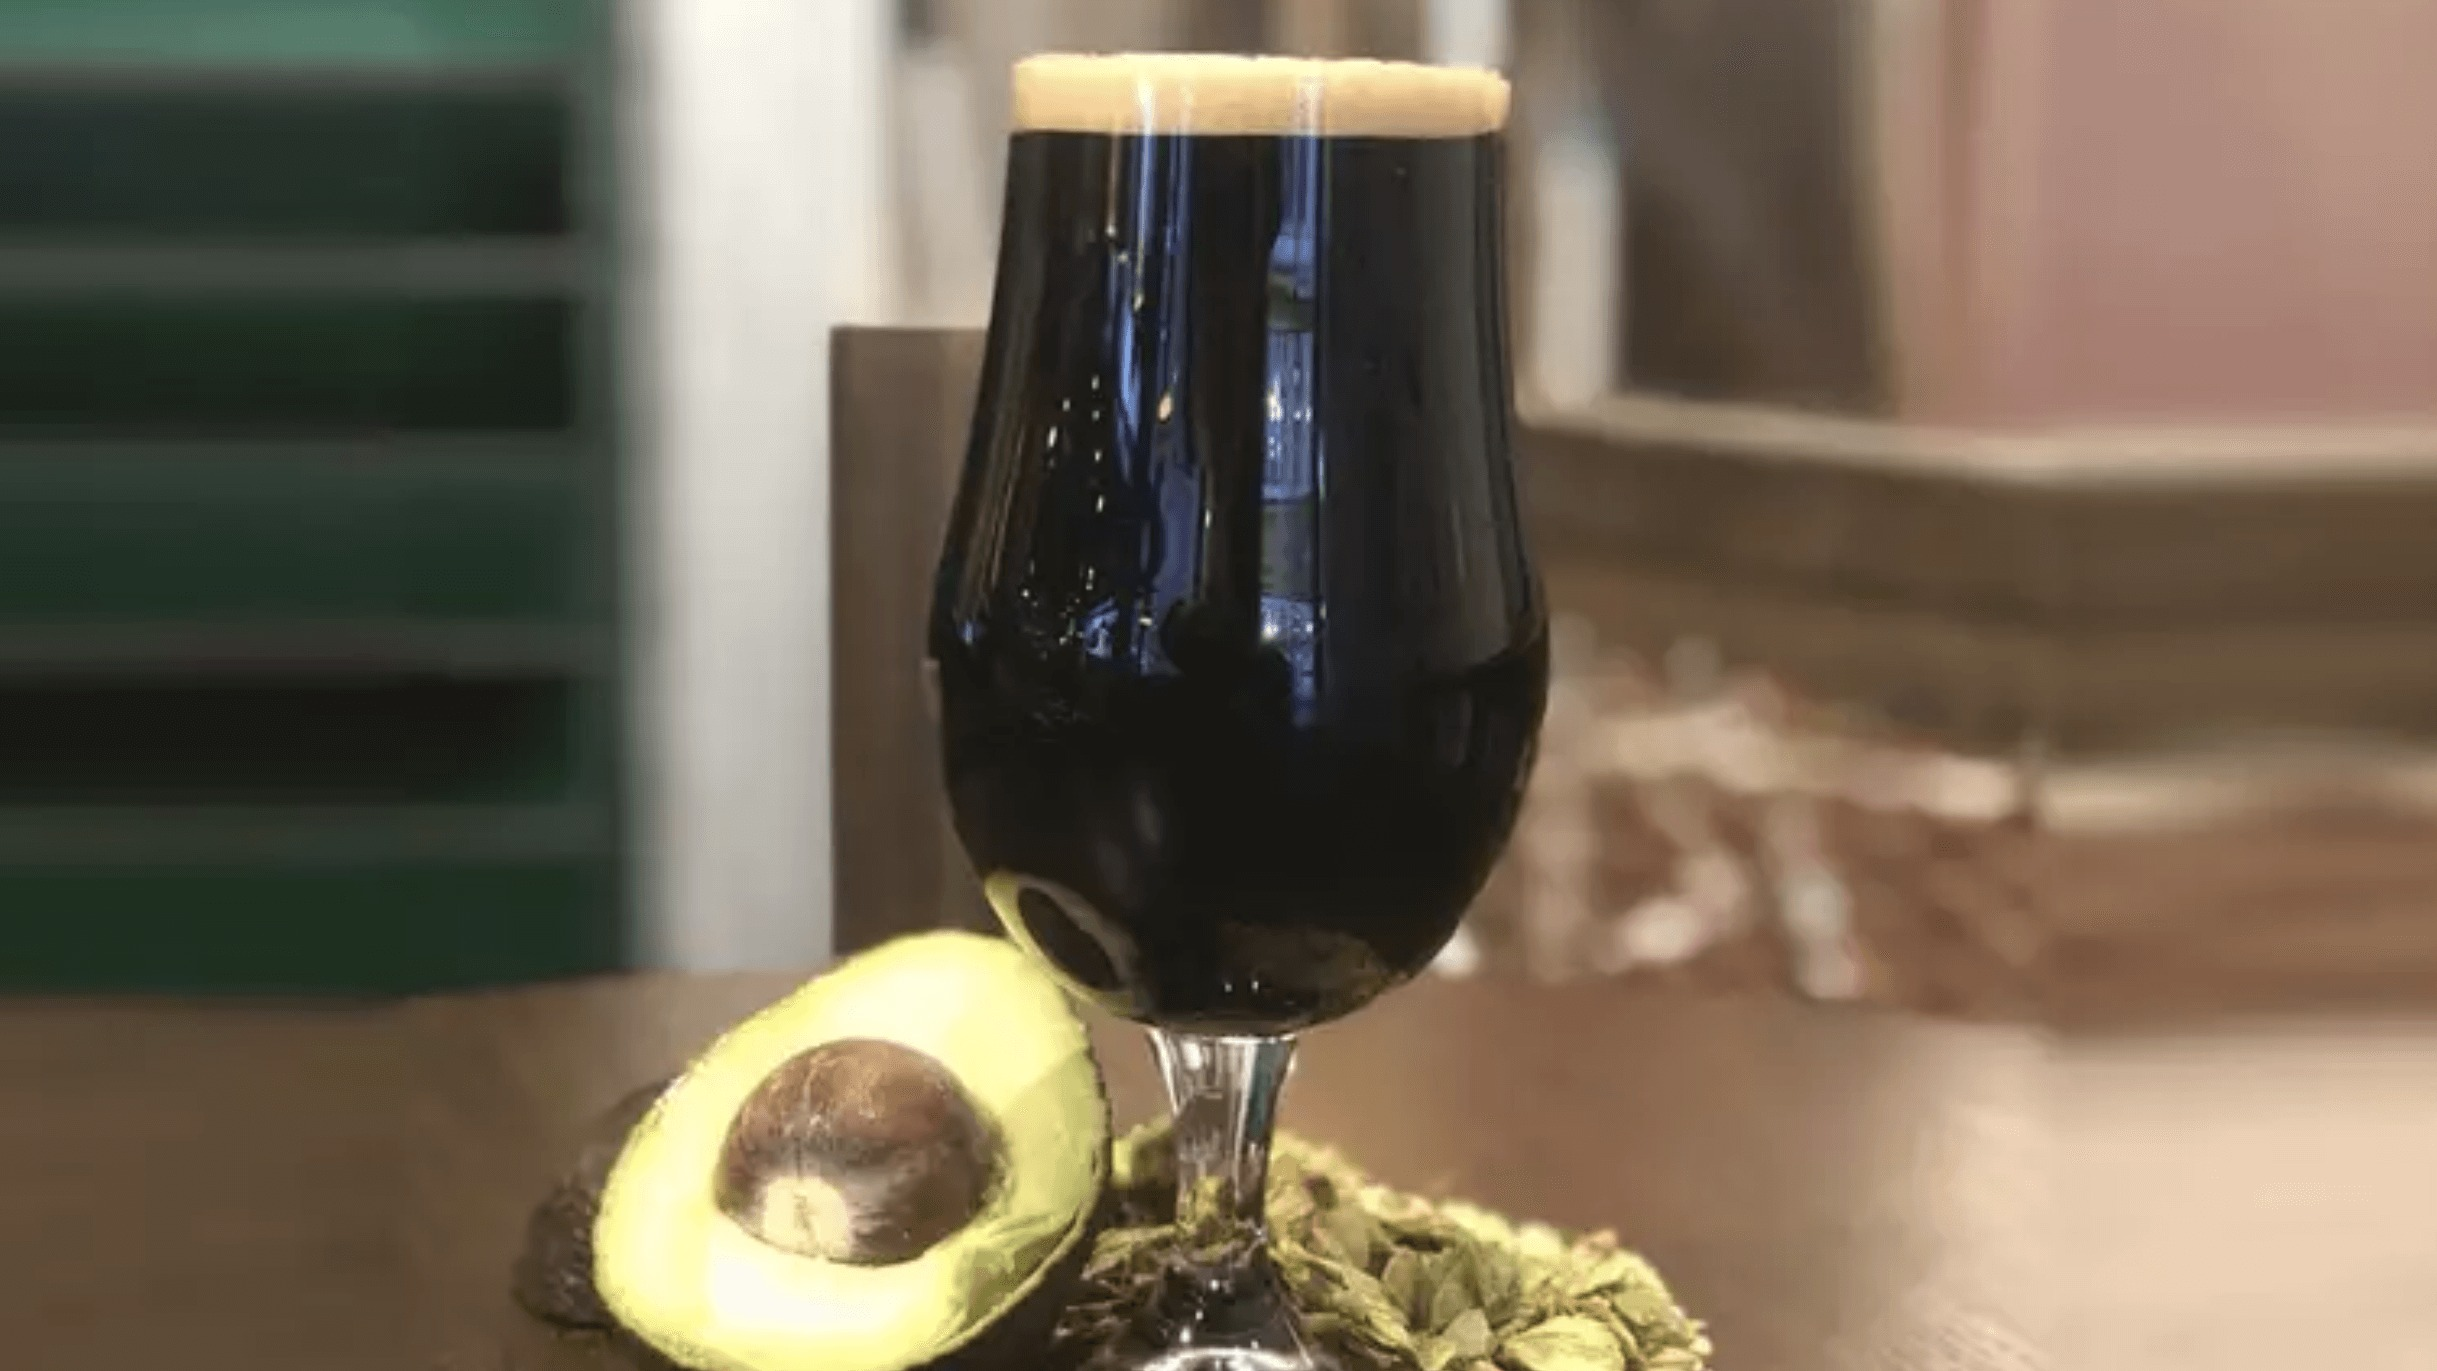 London Pub and Brewery, Long Arm, Launches 'Millennial Stout' Avocado Vegan Beer